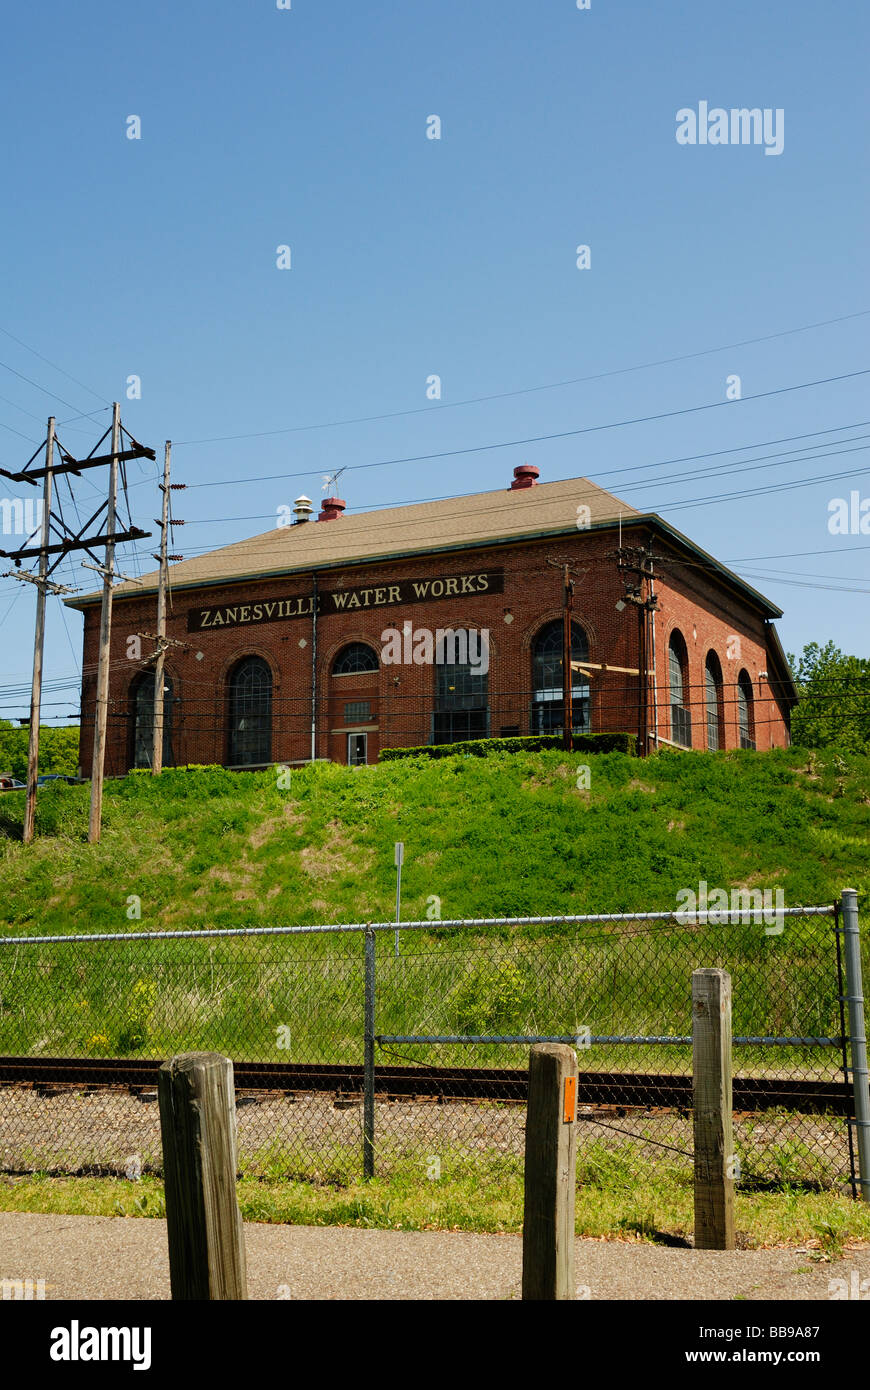 Zanesville water works building against blue sky - Stock Image